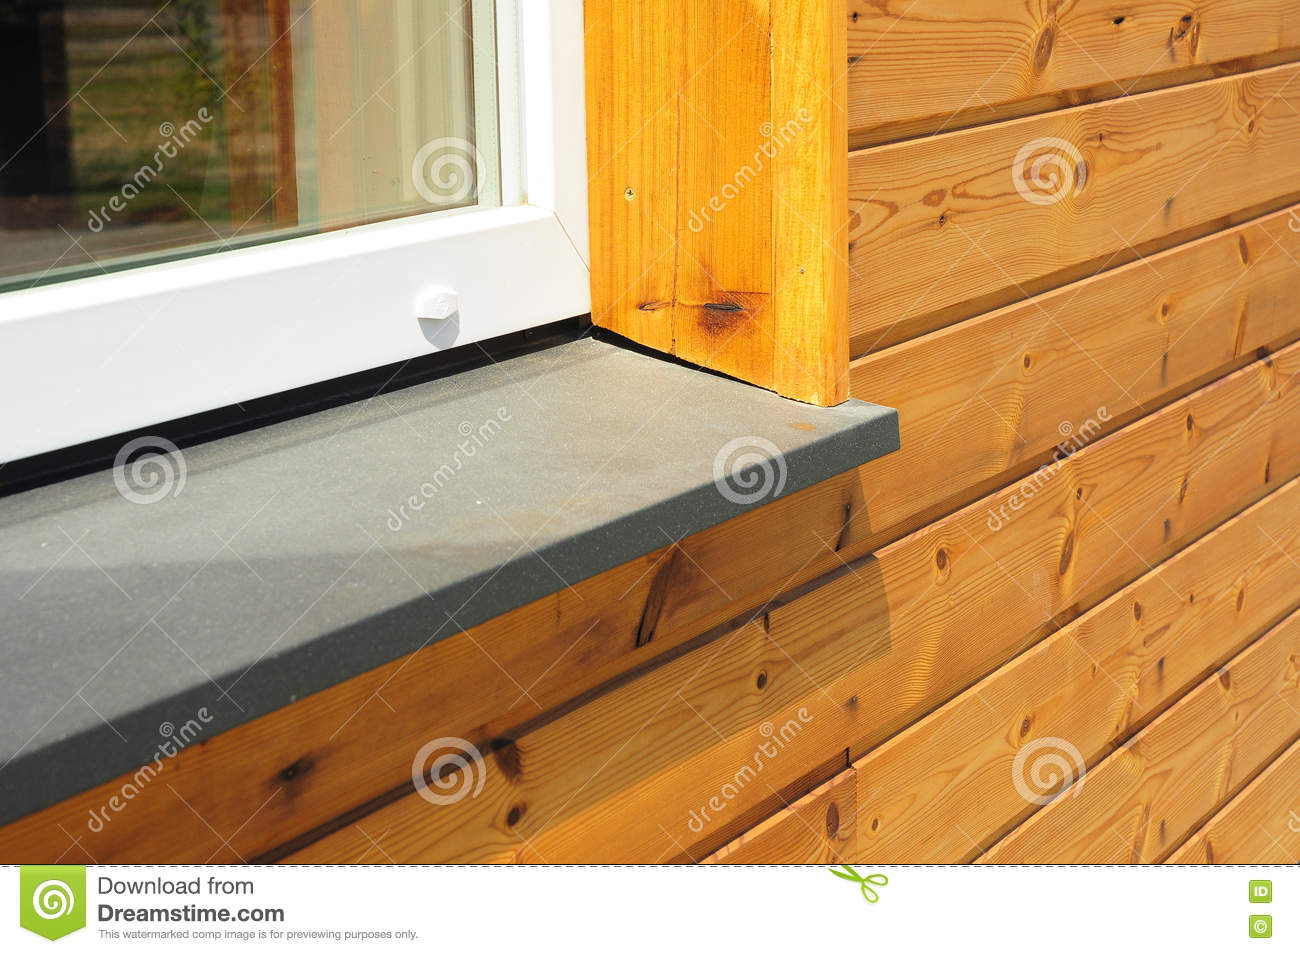 New window sill repair with house facade wooden wall exterior stock image image 74551175 for Repairing concrete window sills exterior